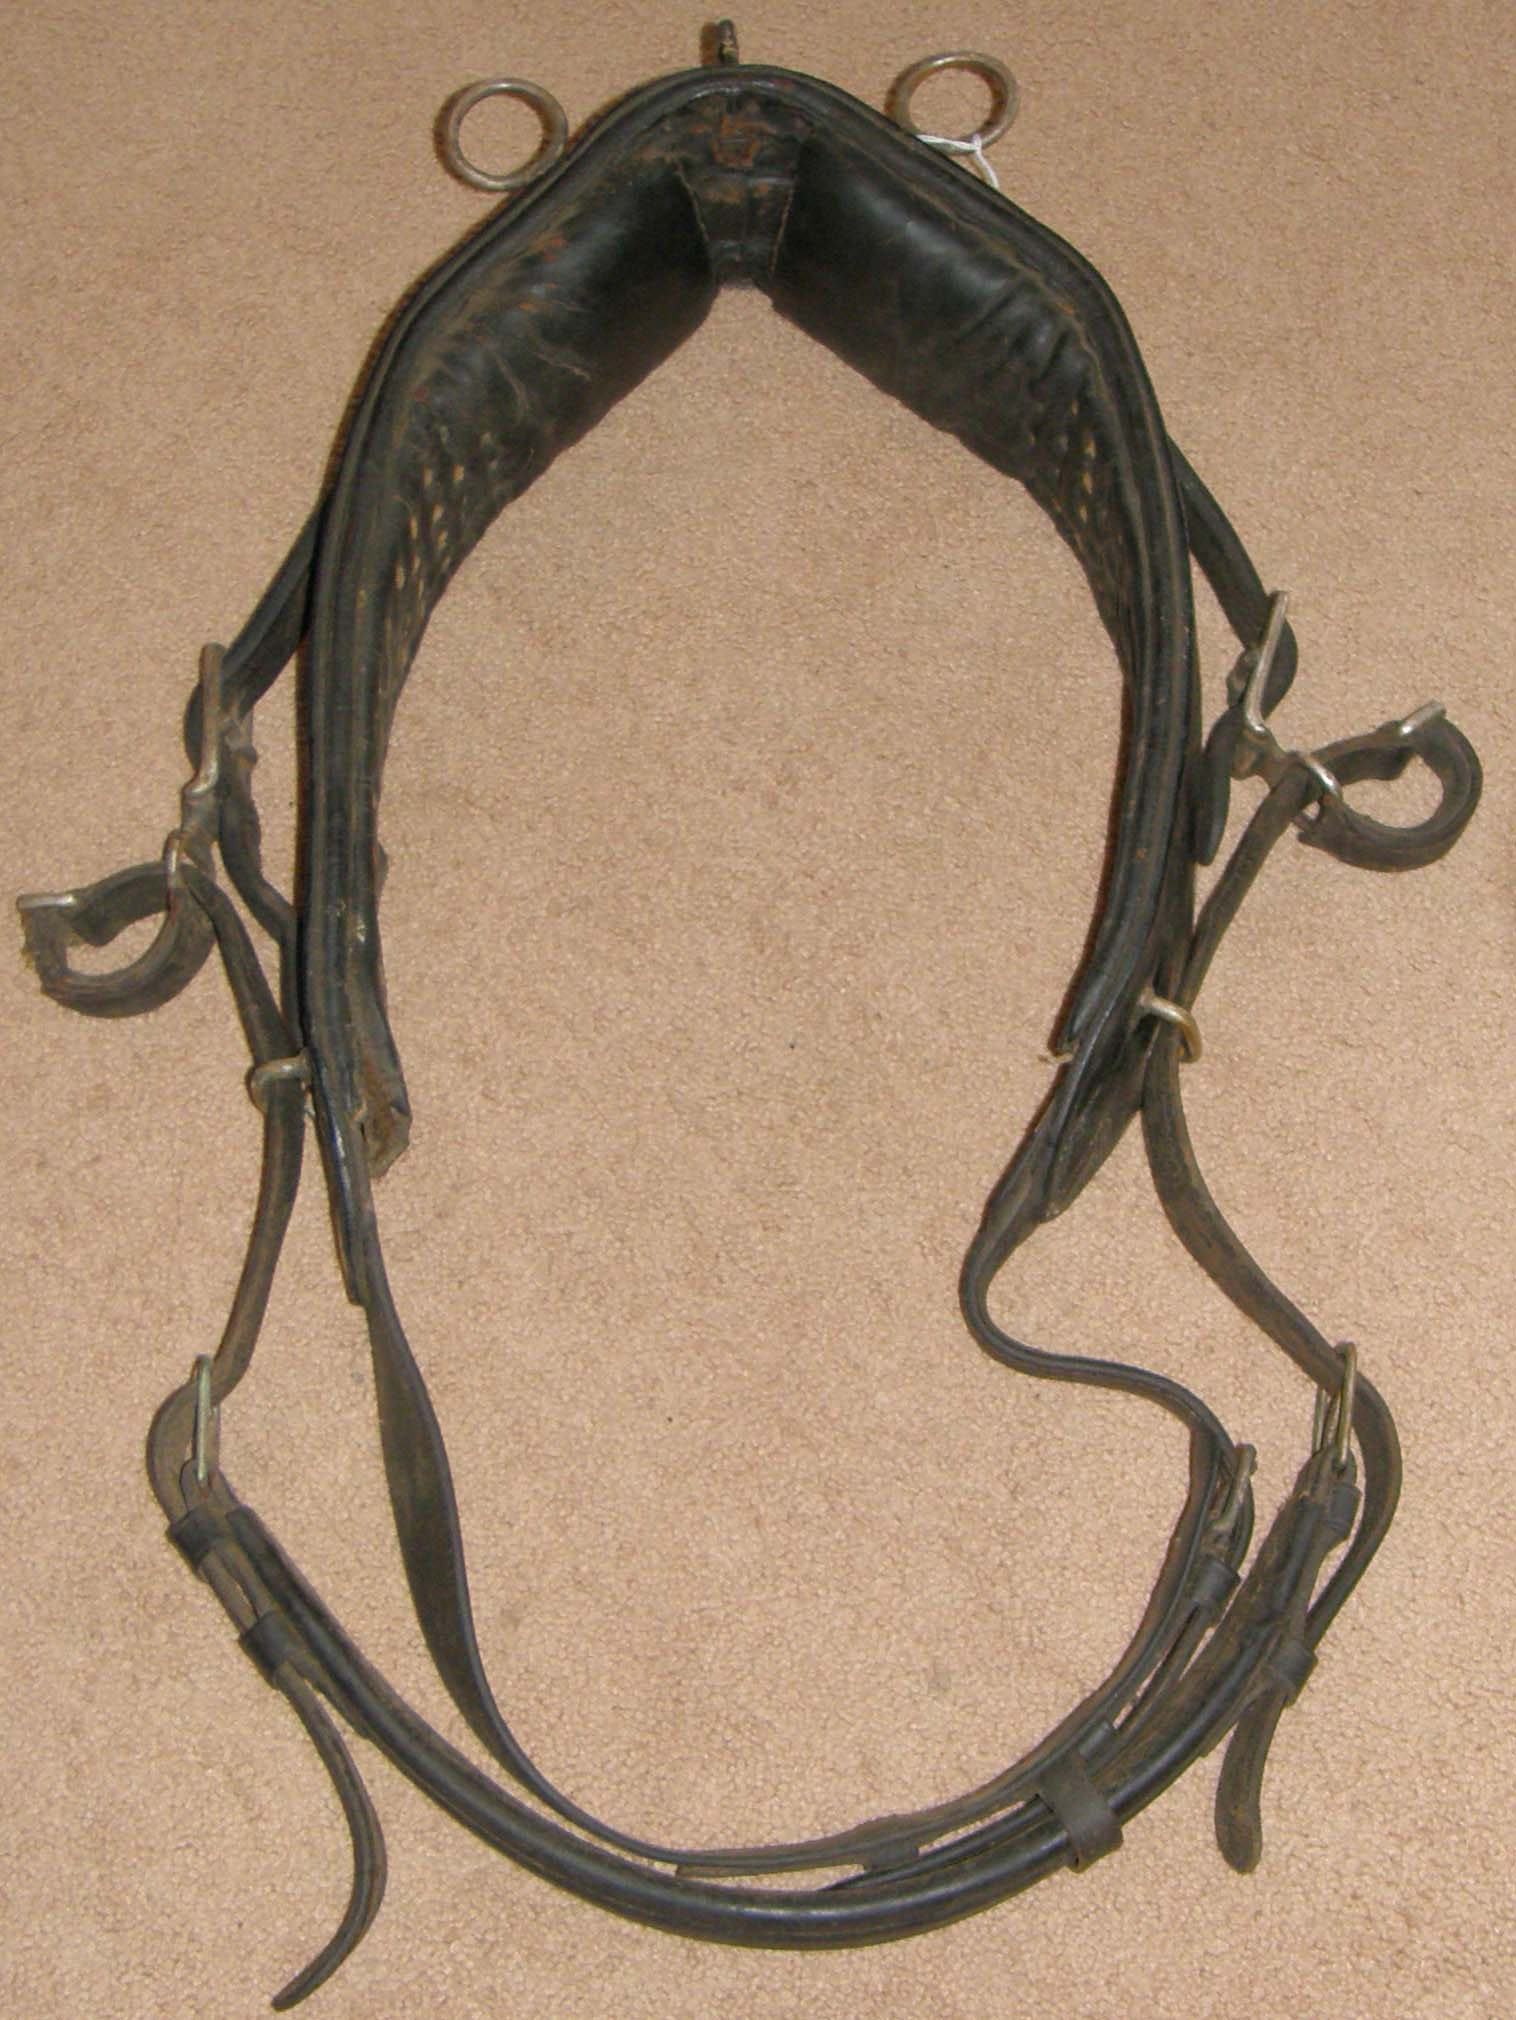 Vintage Horse Driving Harness Saddle & Girth